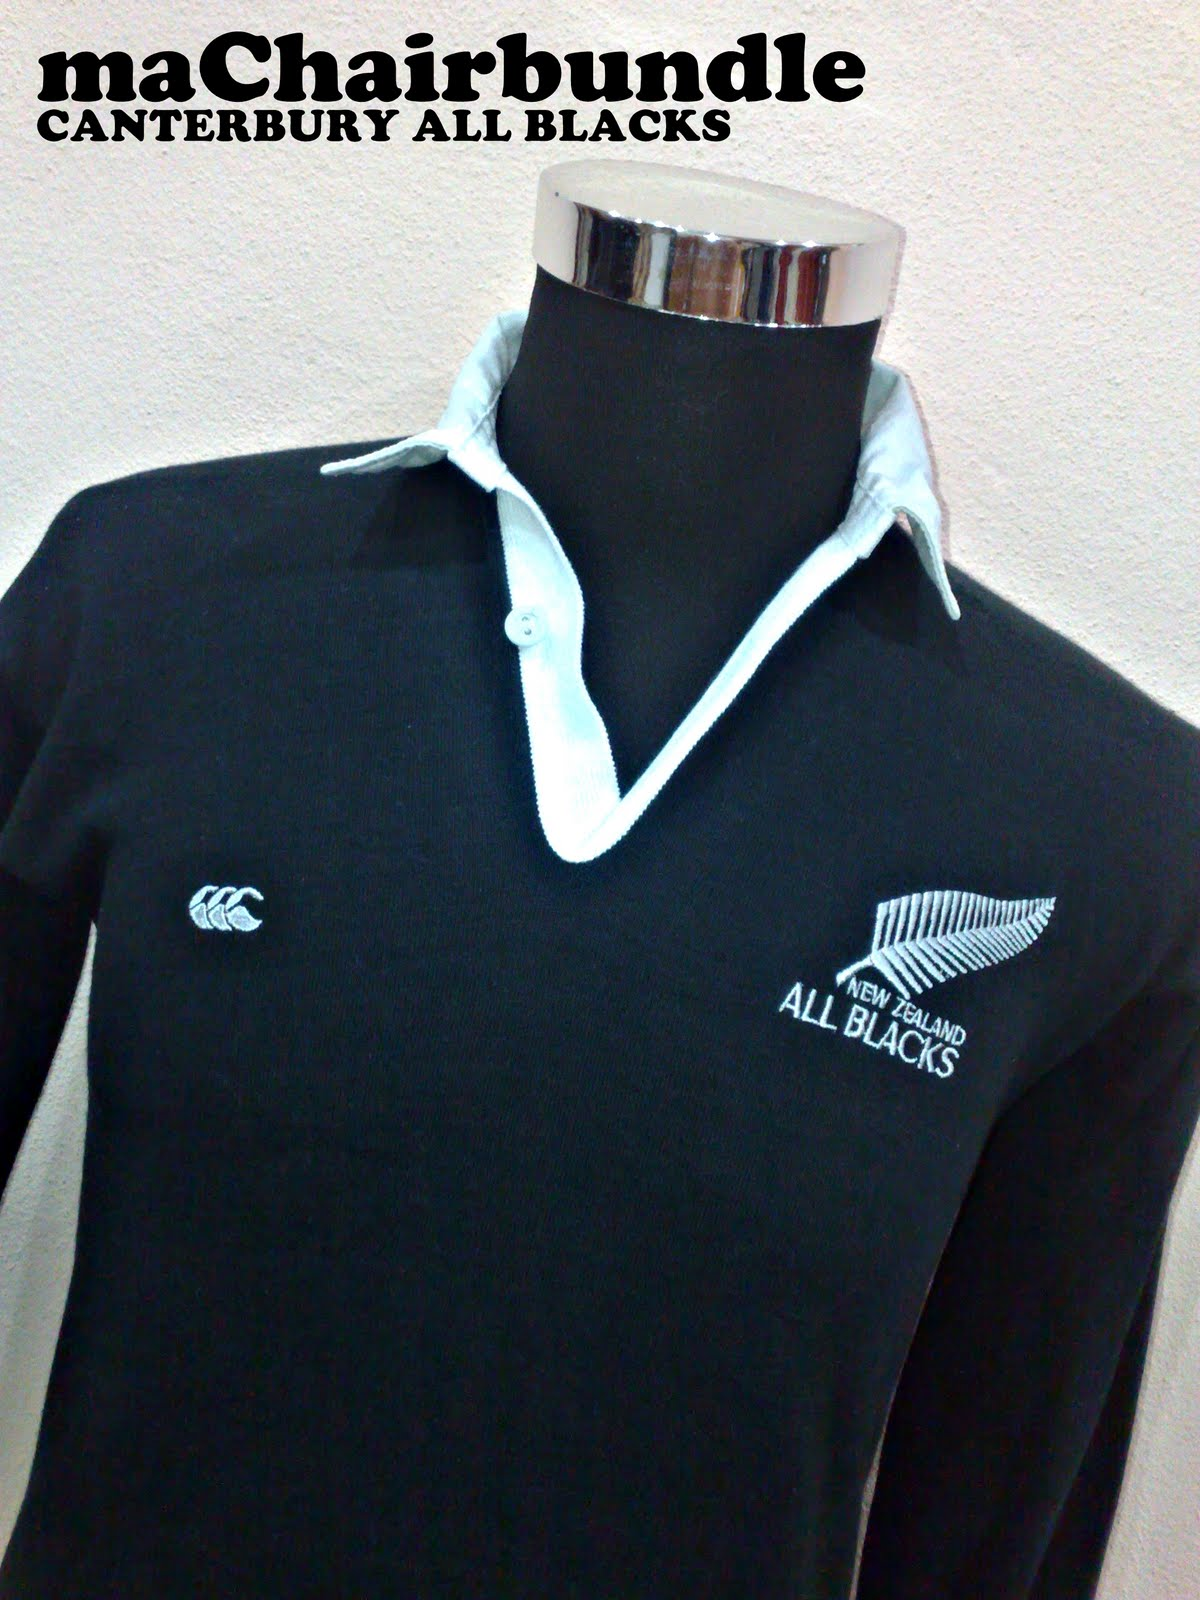 machairbundle canterbury all black long sleeve polo shirt rm60 sold. Black Bedroom Furniture Sets. Home Design Ideas